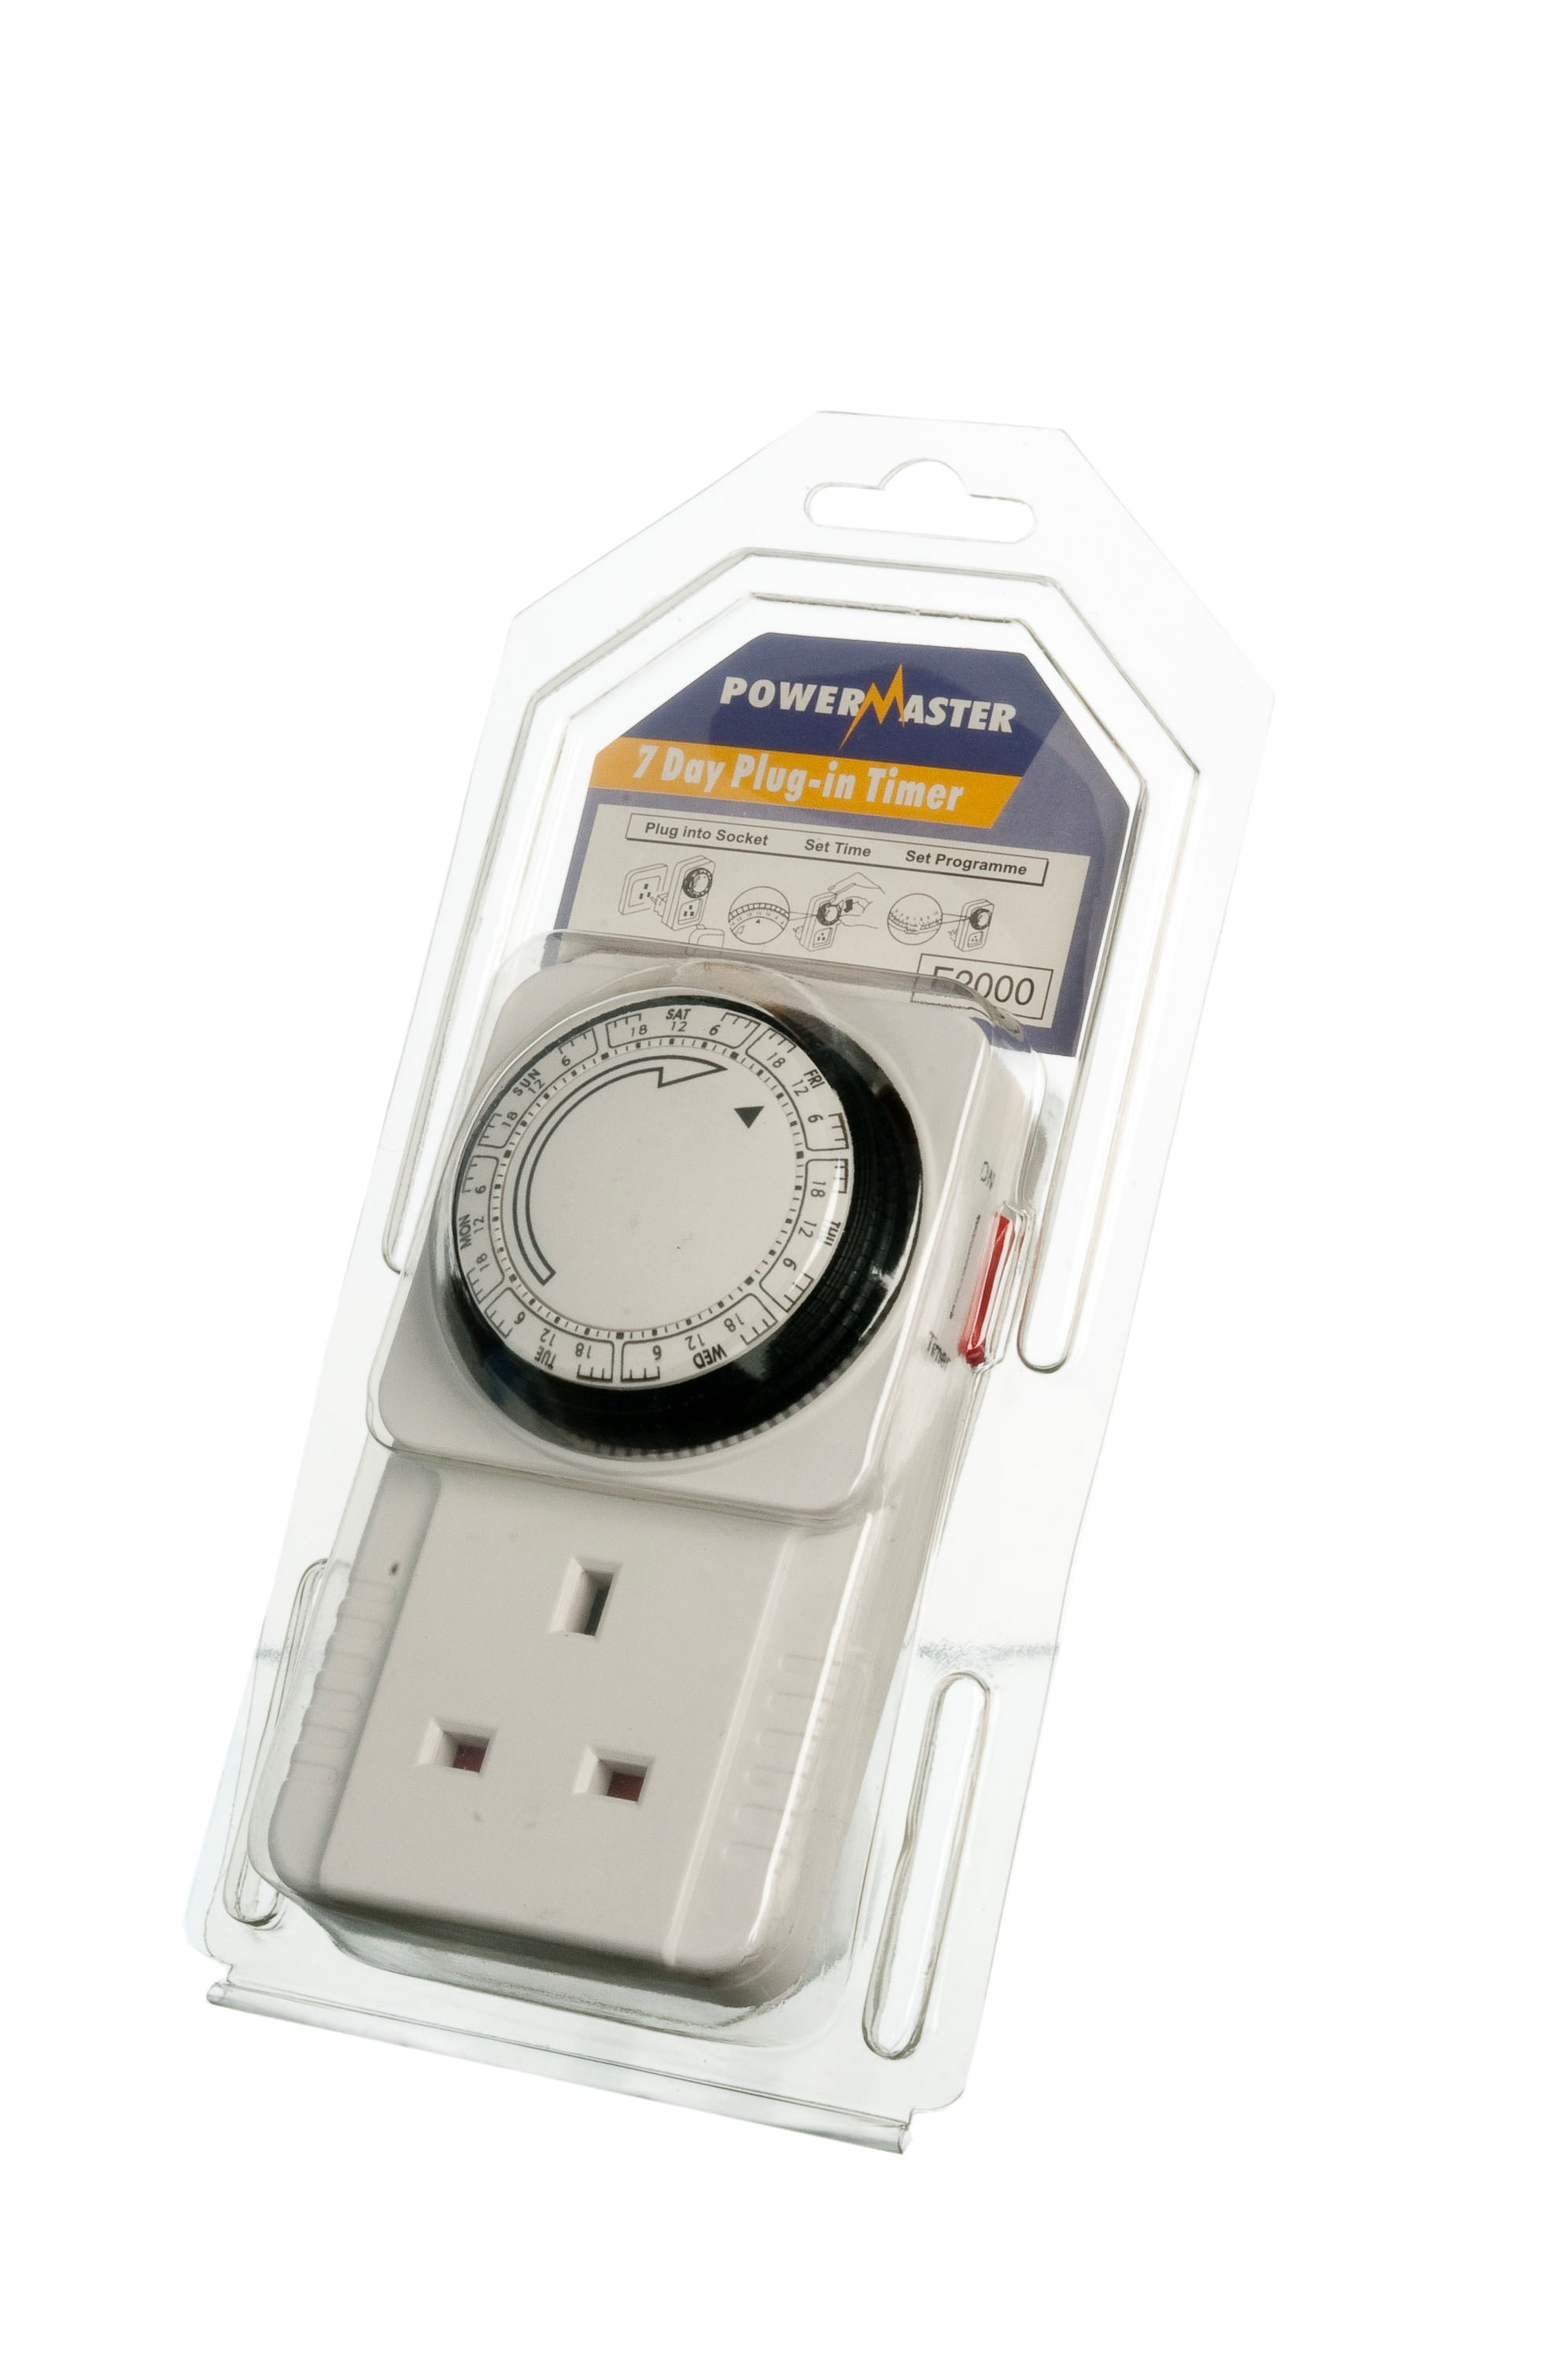 Powermaster  7 Day Plug-In Timer - 13 Amp